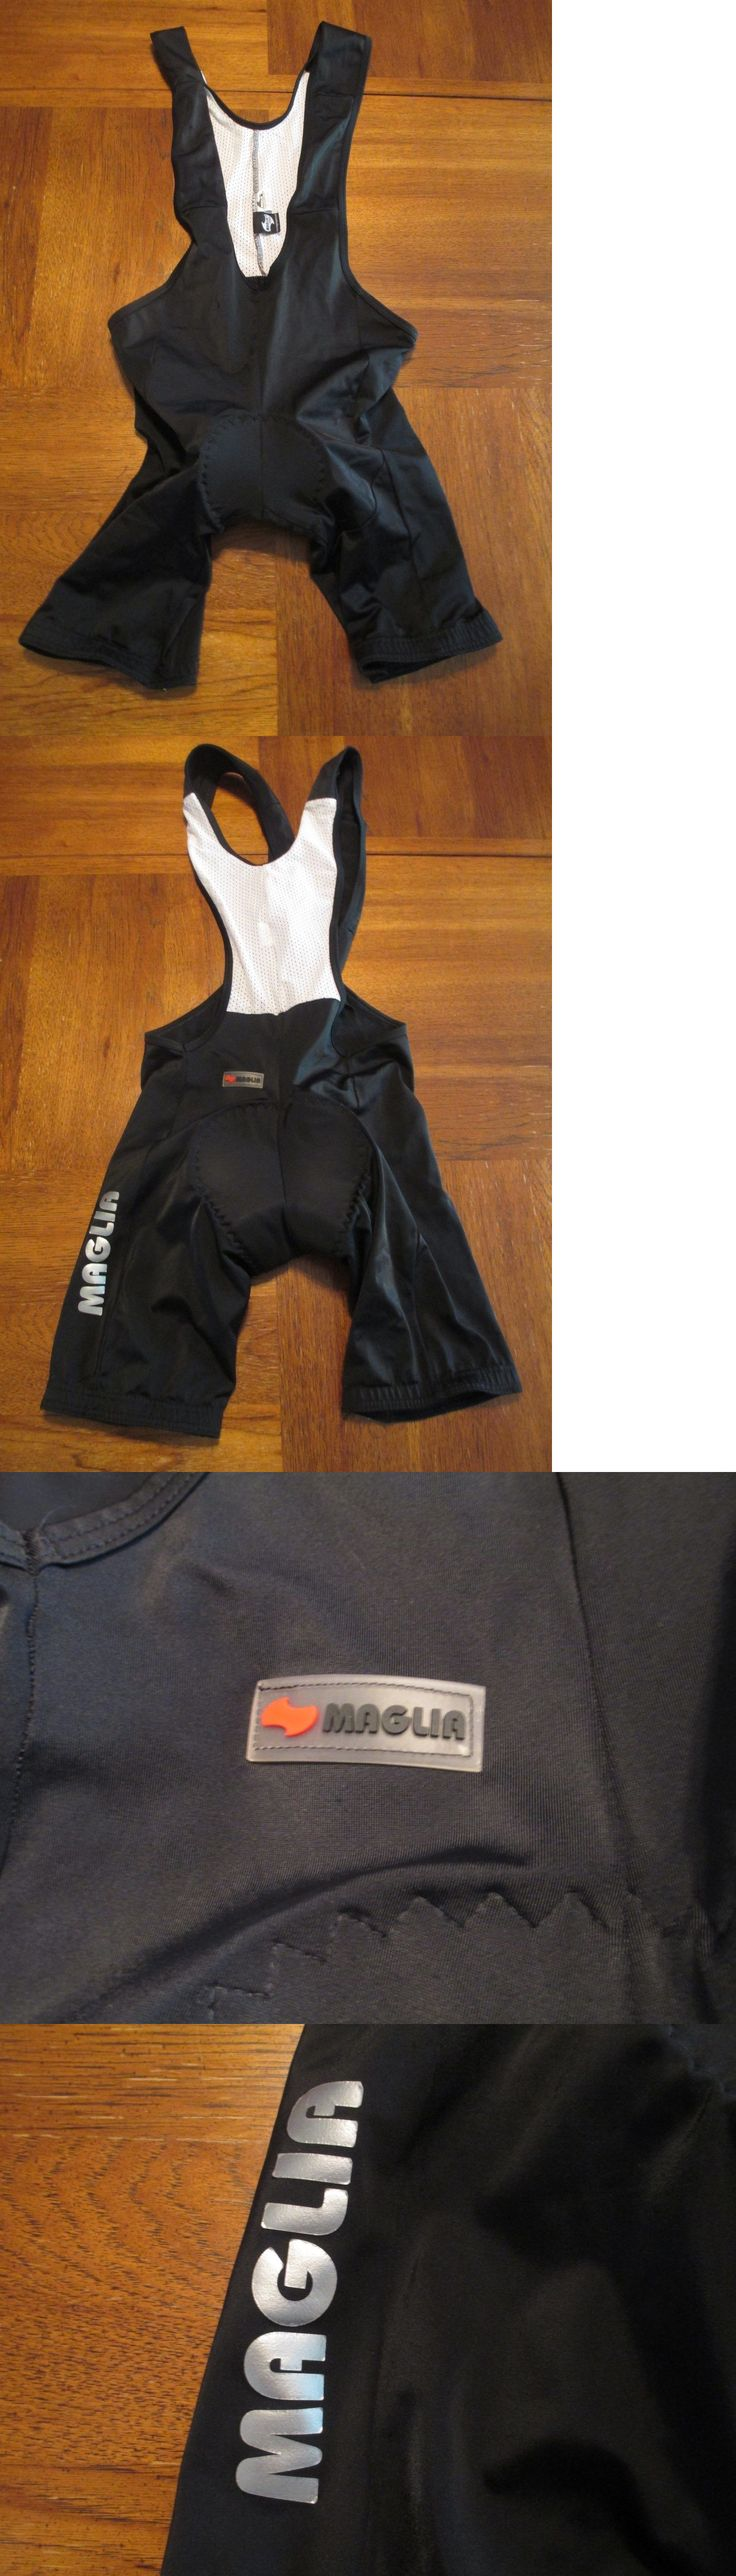 Shorts 177853: New Mens Maglia Sport Spandex Compression Cycling Bib Shorts Xl ~Padded Crotch~ -> BUY IT NOW ONLY: $33.98 on eBay!